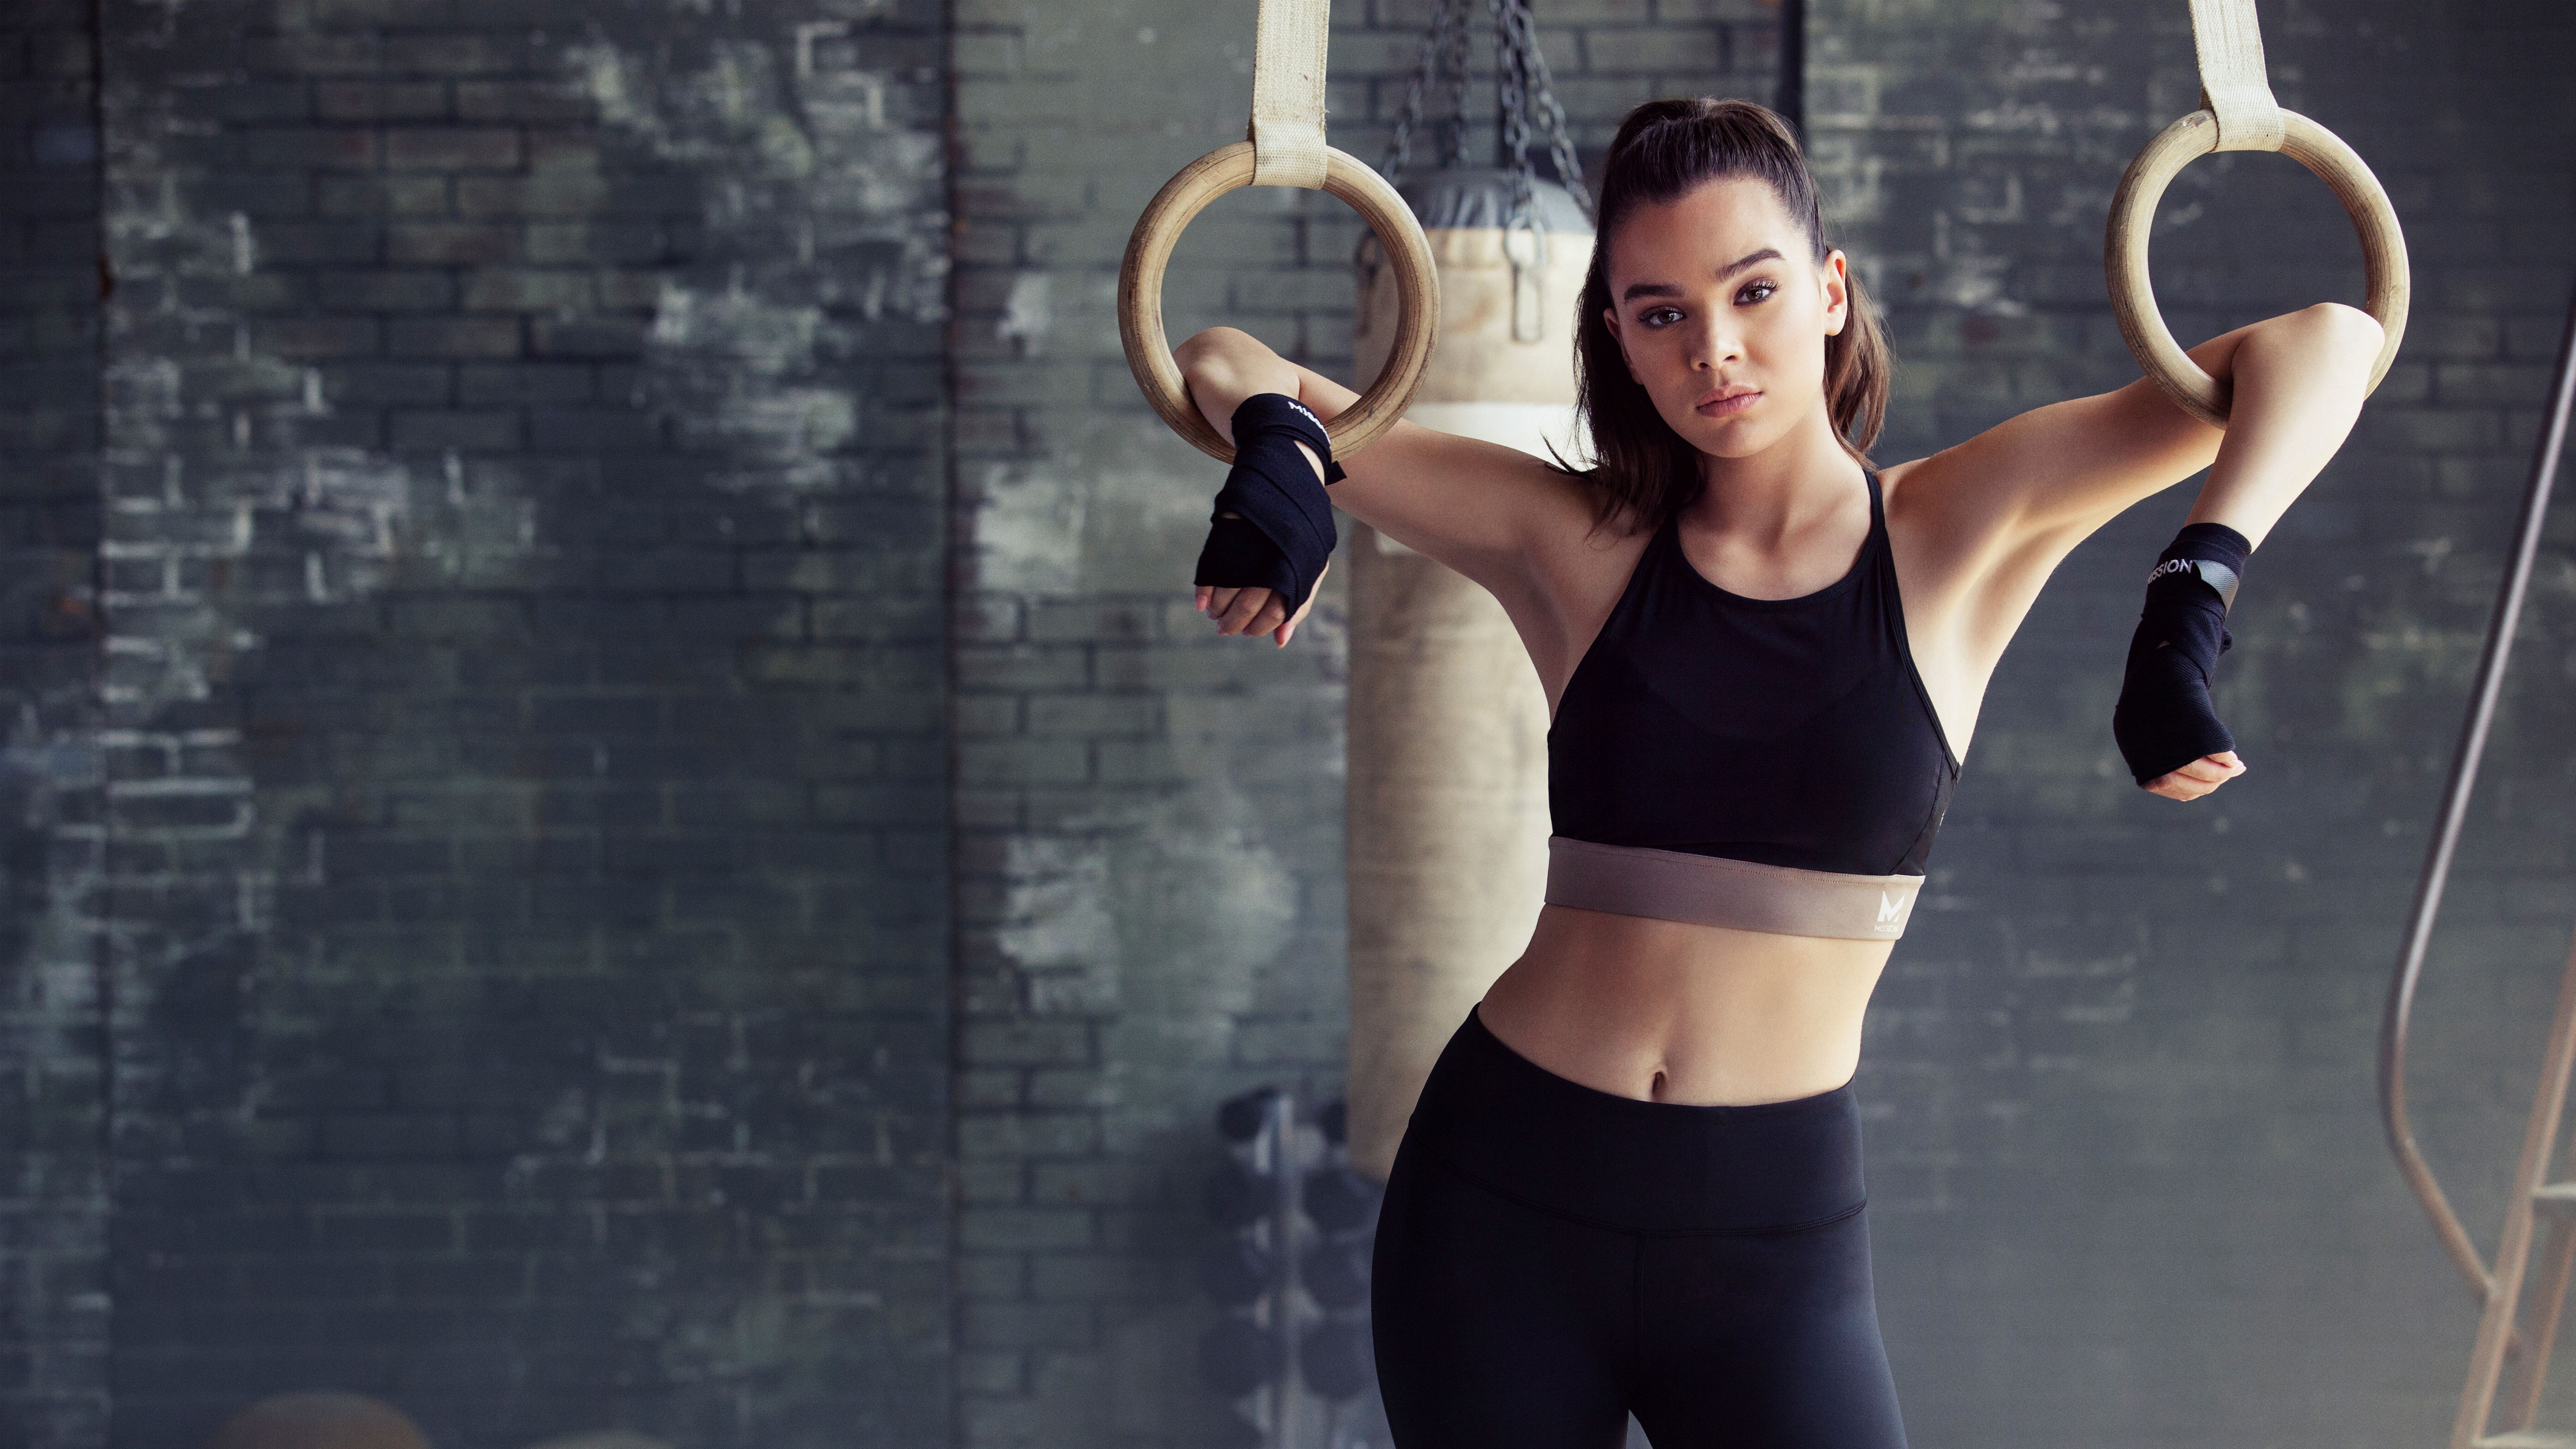 87 fitness hd wallpapers background images wallpaper abyss